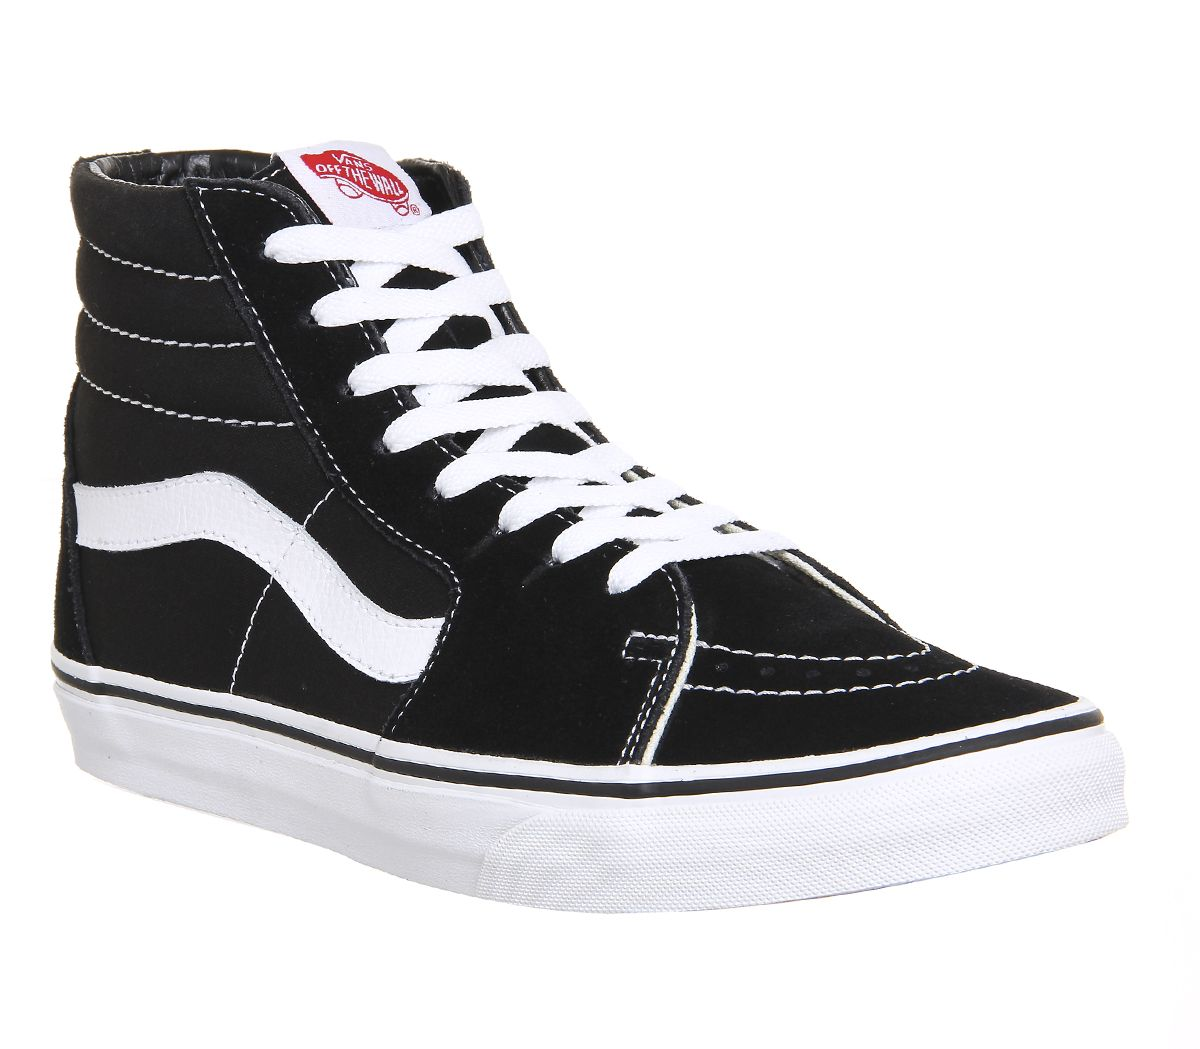 27fab61bcde6f4 Vans Sk8 Hi Black White Canvas - Office Girl